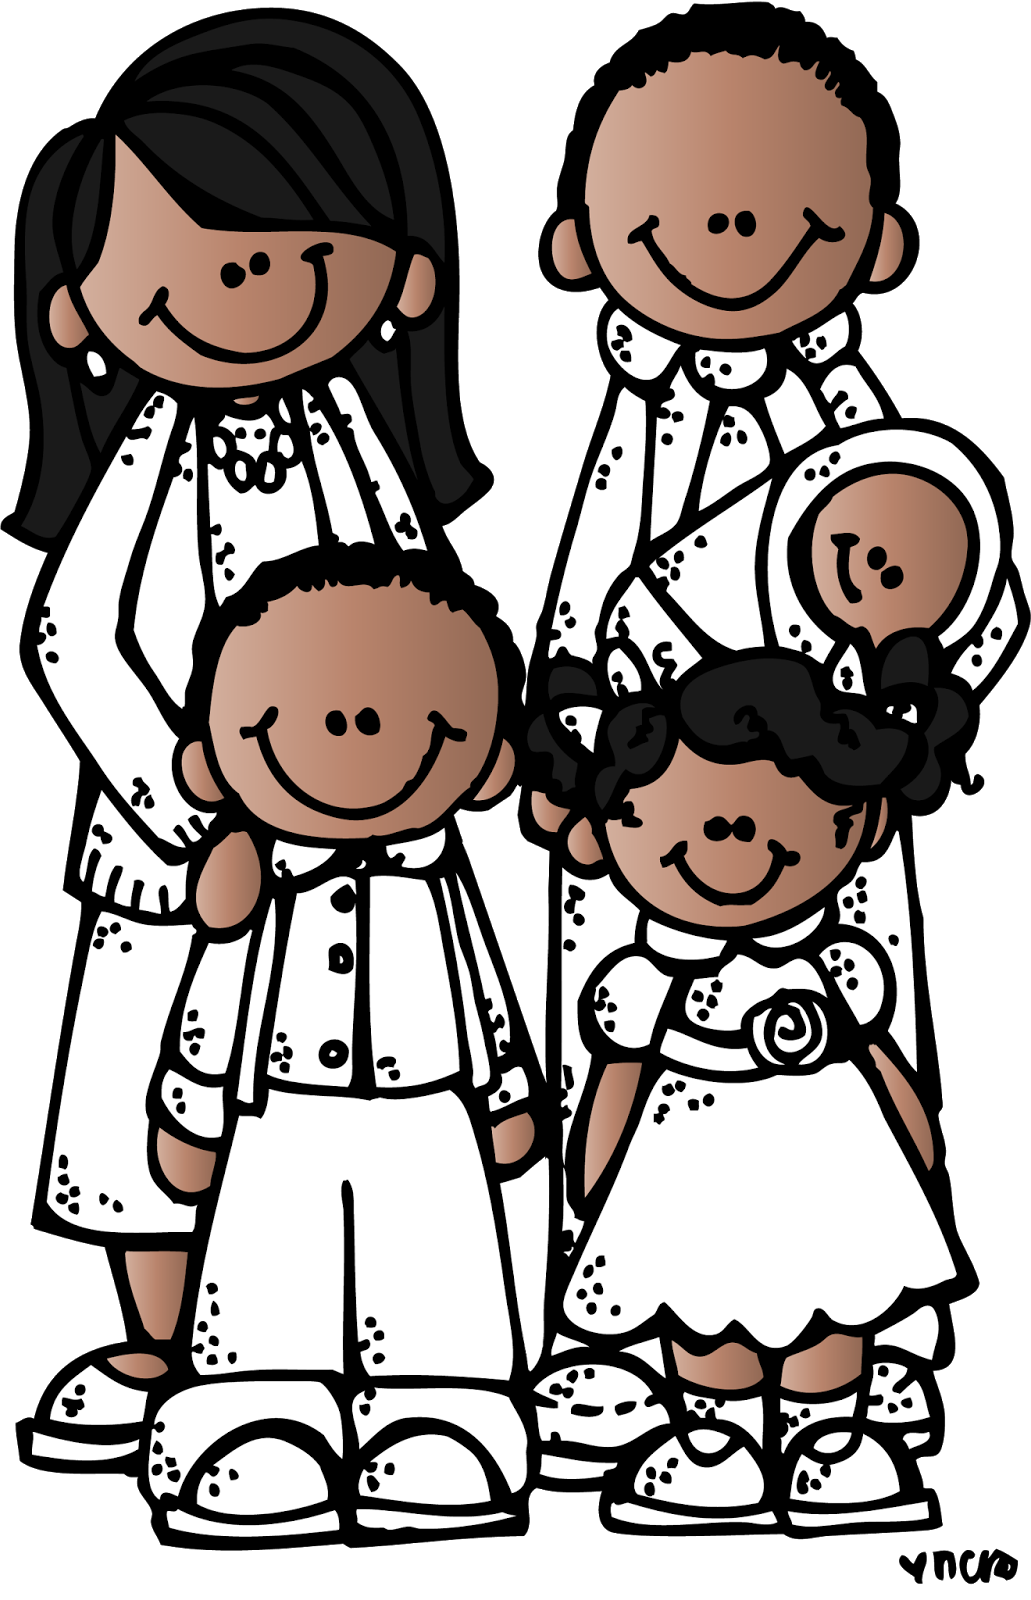 Lds png hd transparent. Family clipart computer